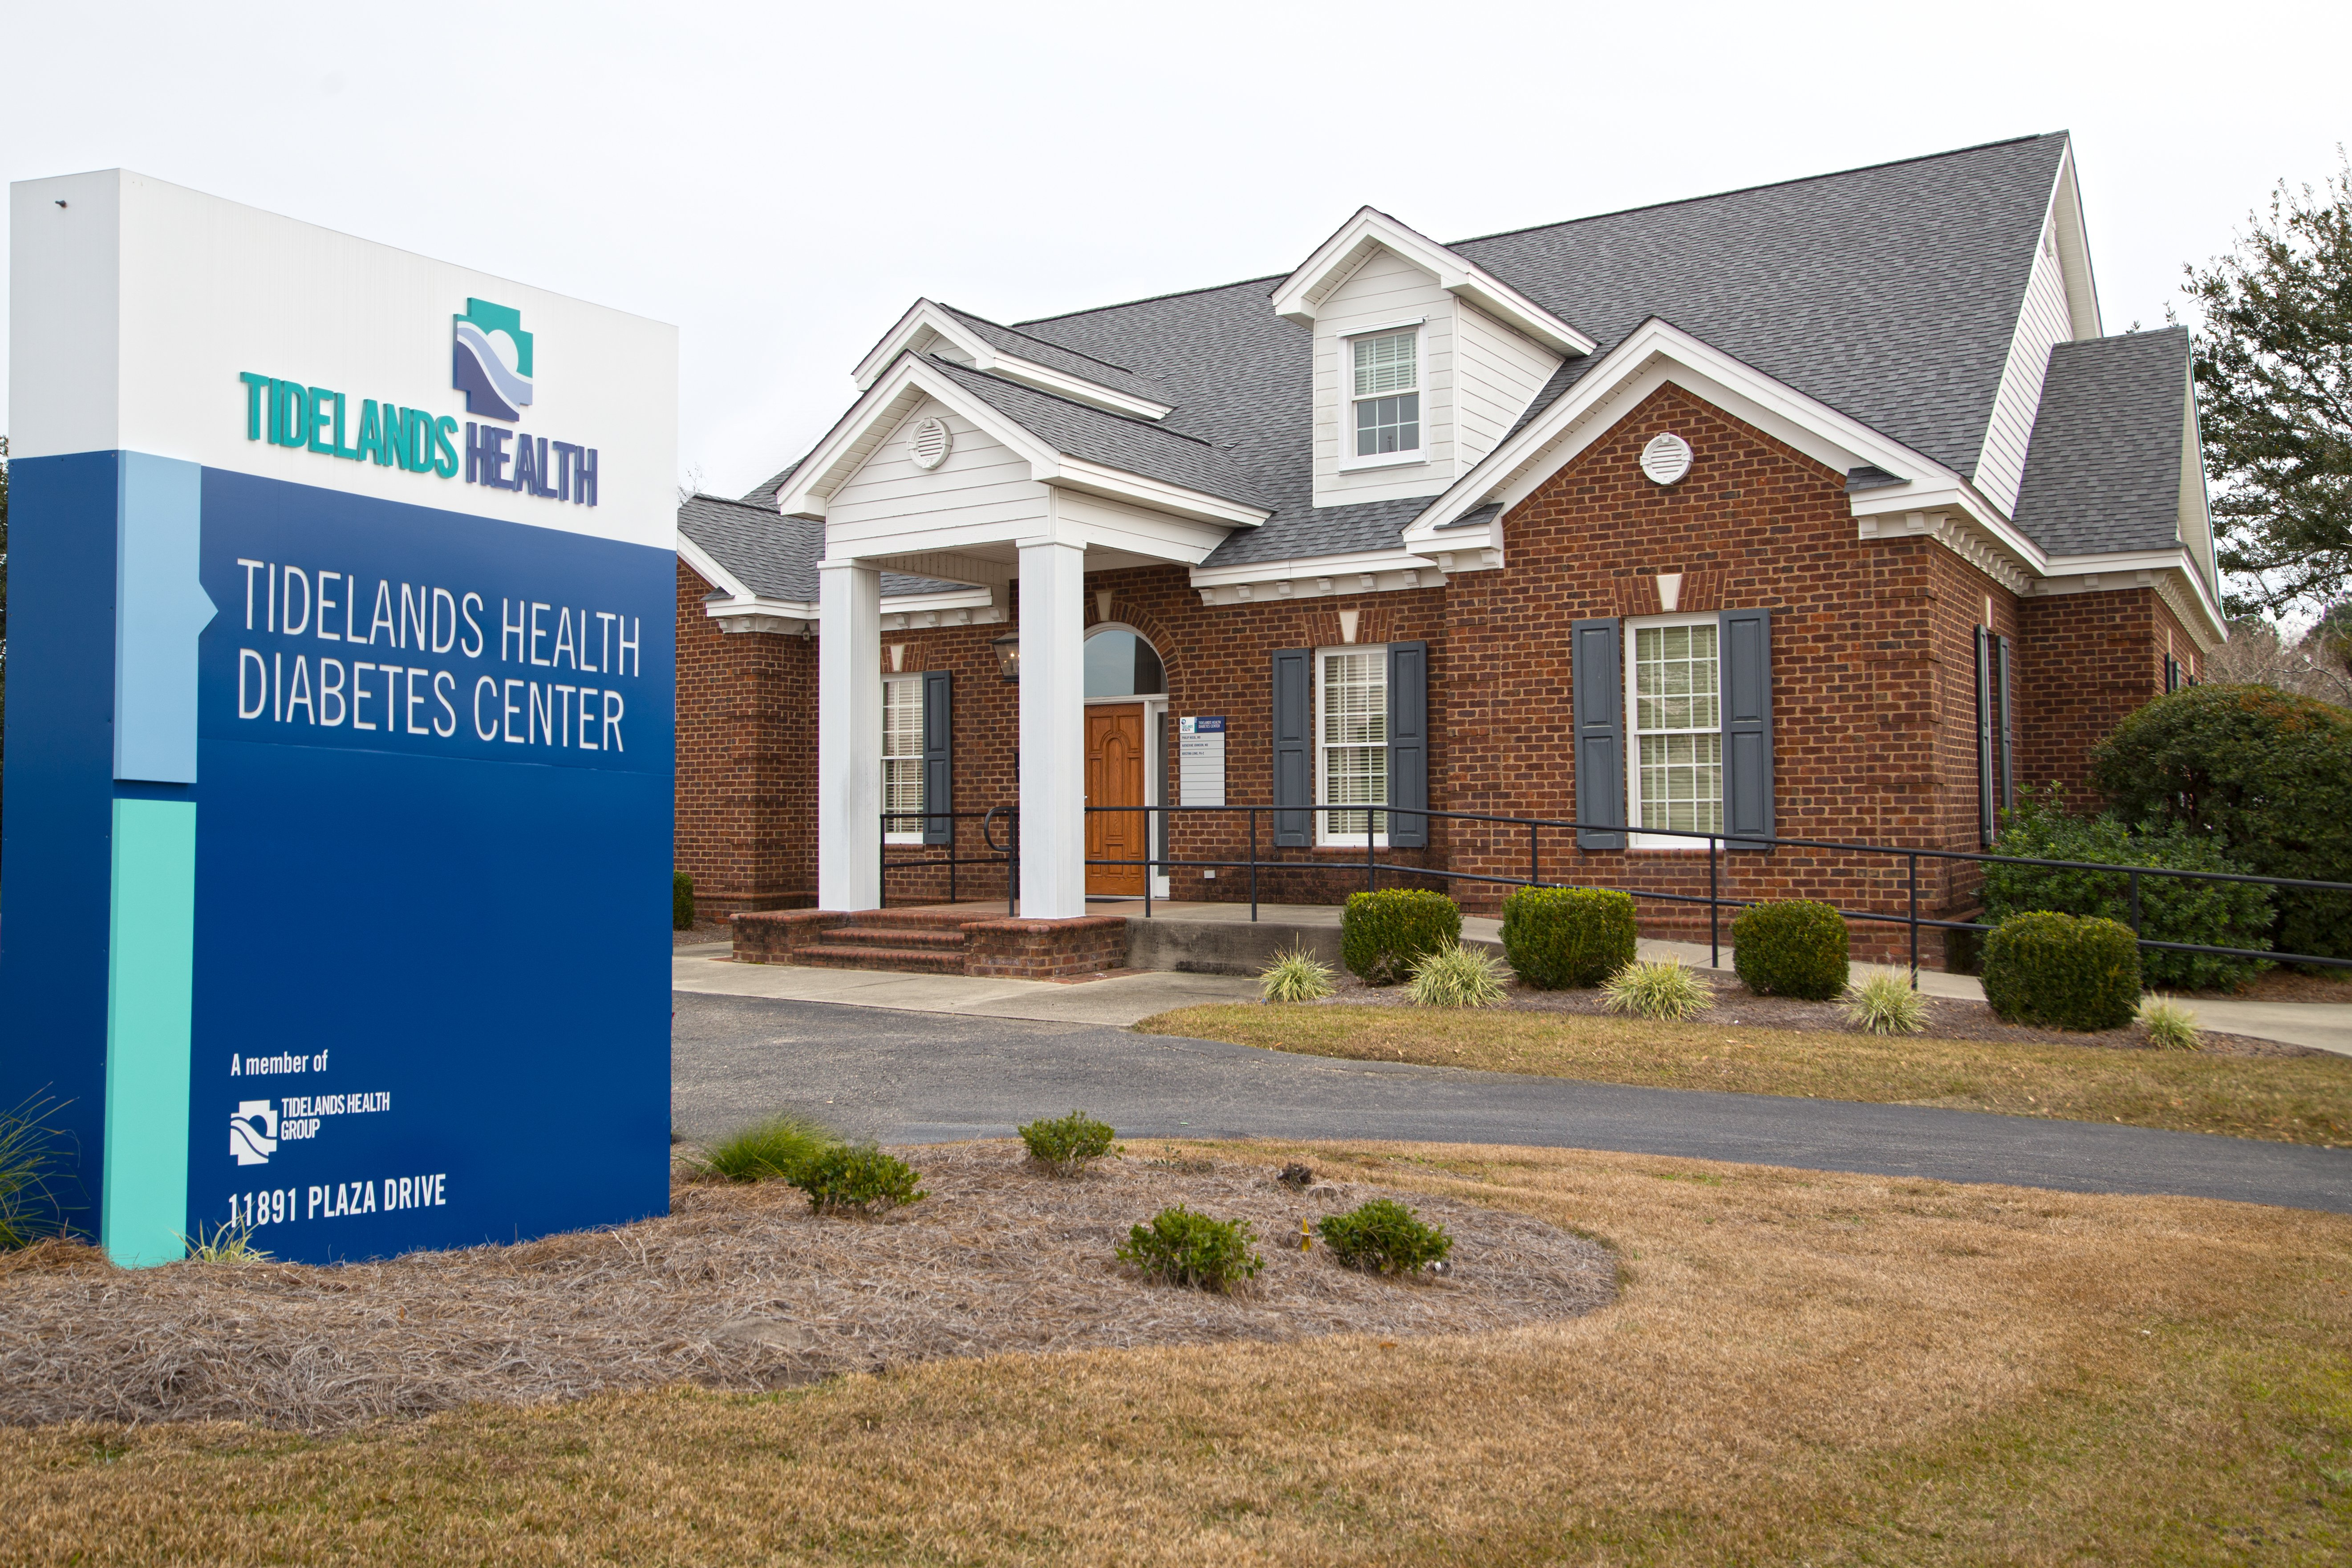 Tidelands Health Diabetes Center